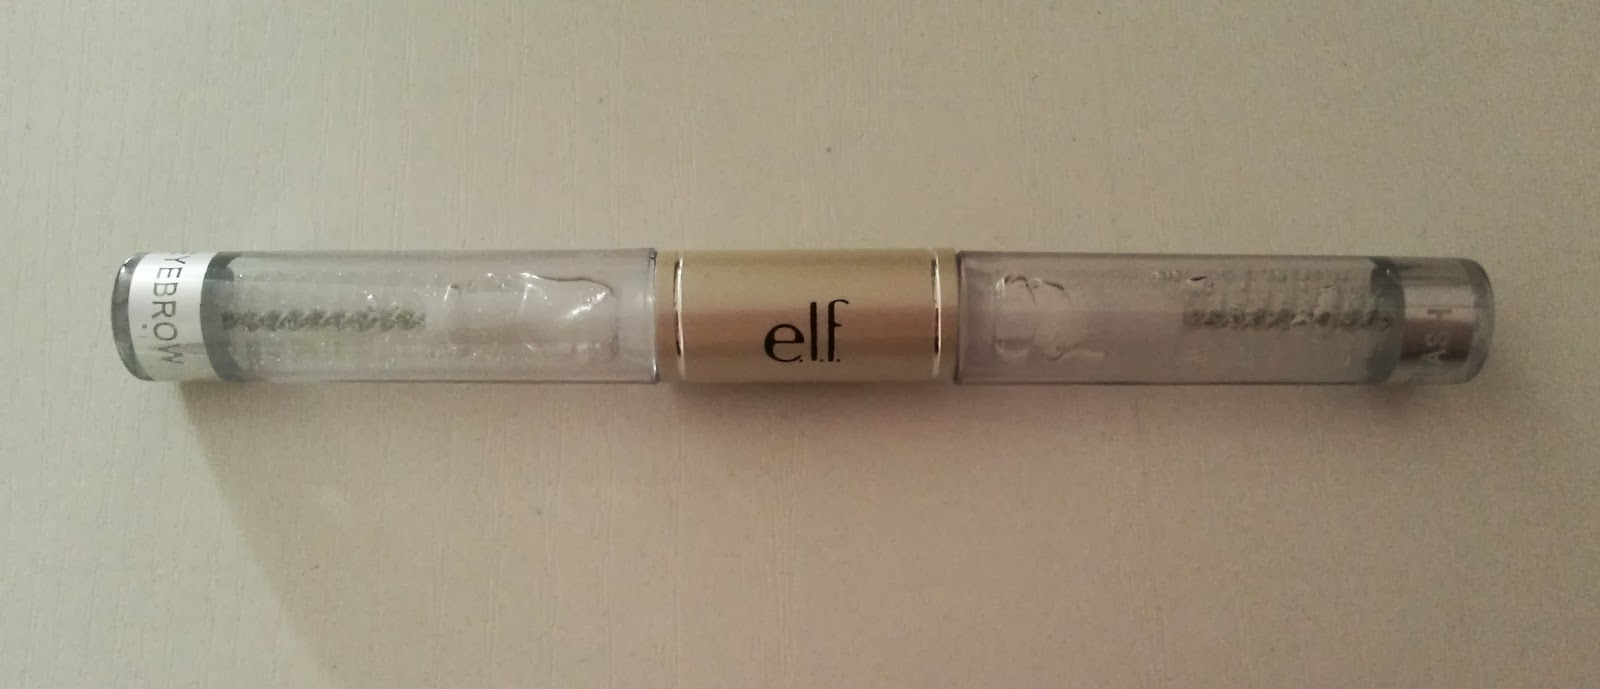 gel sourcils elf